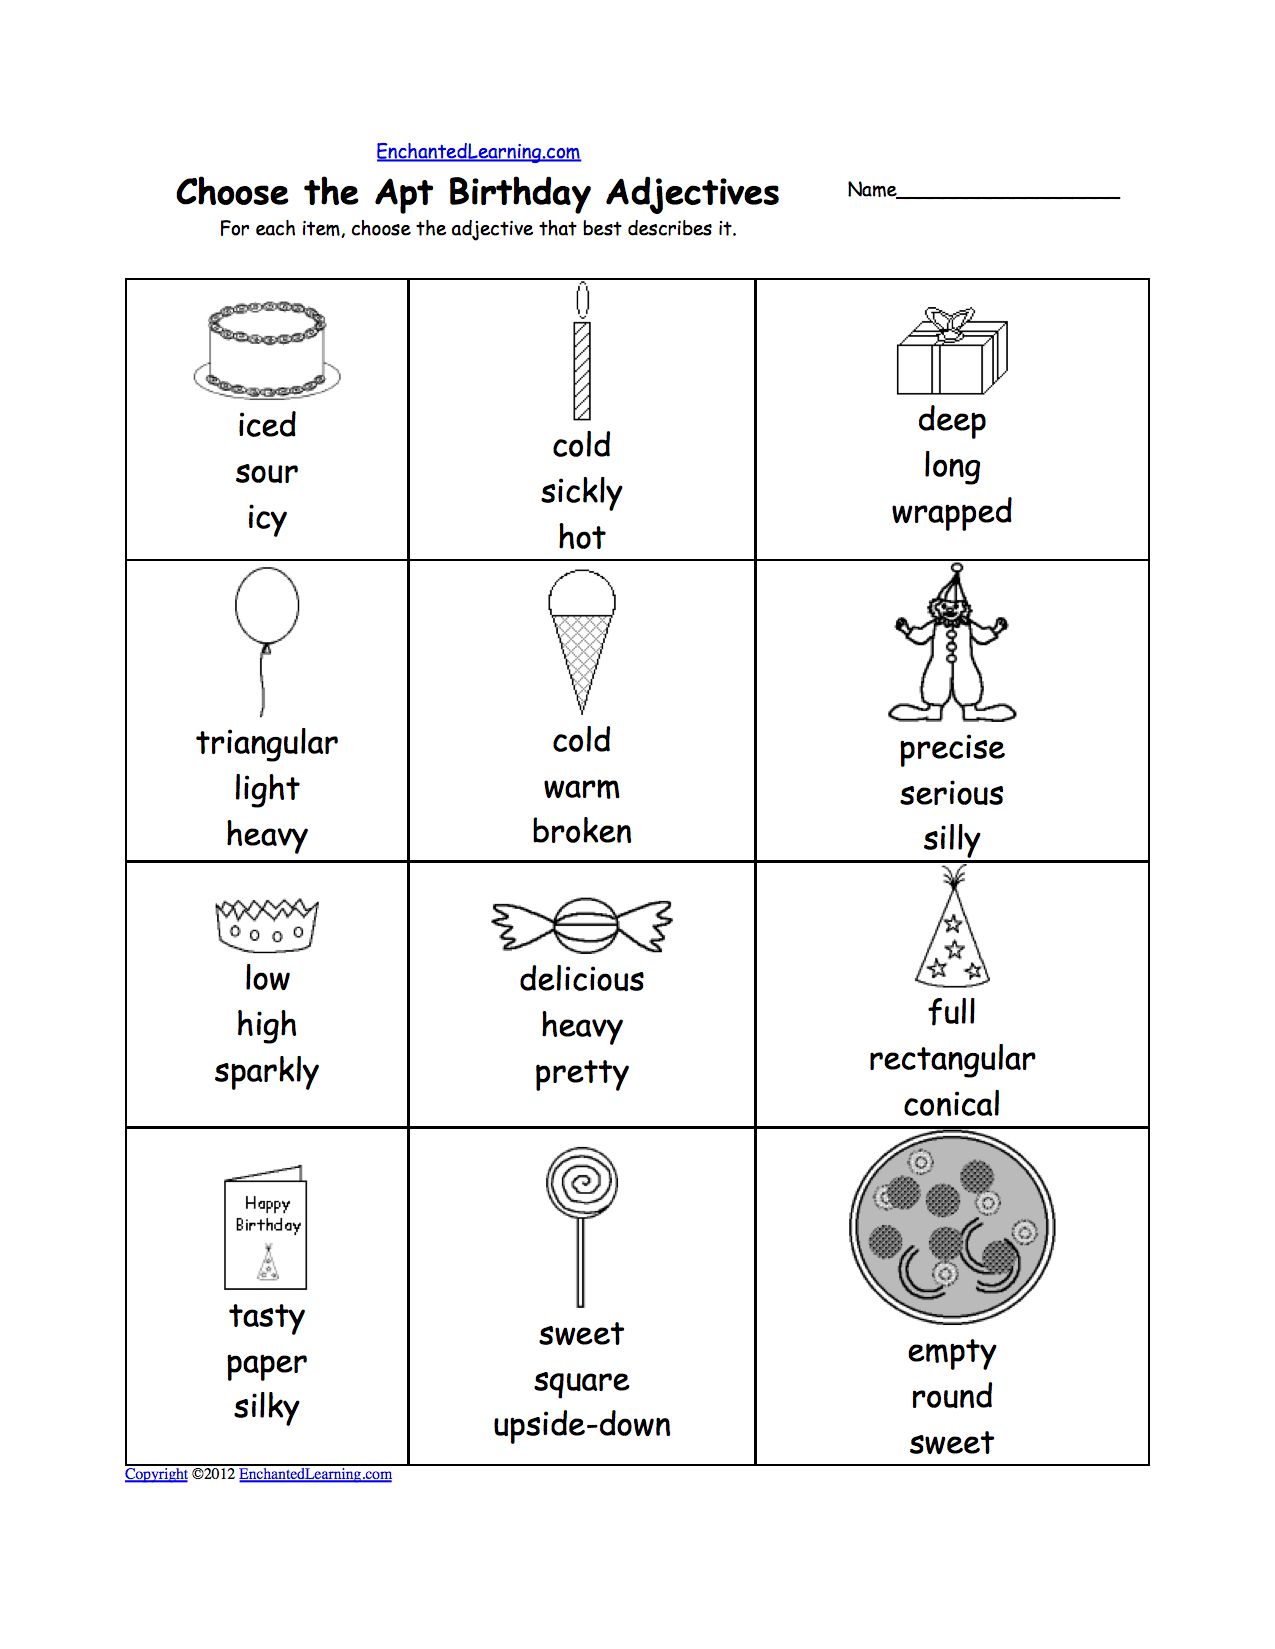 math worksheet : birthday activities at enchantedlearning  : Adjective Worksheet For Kindergarten